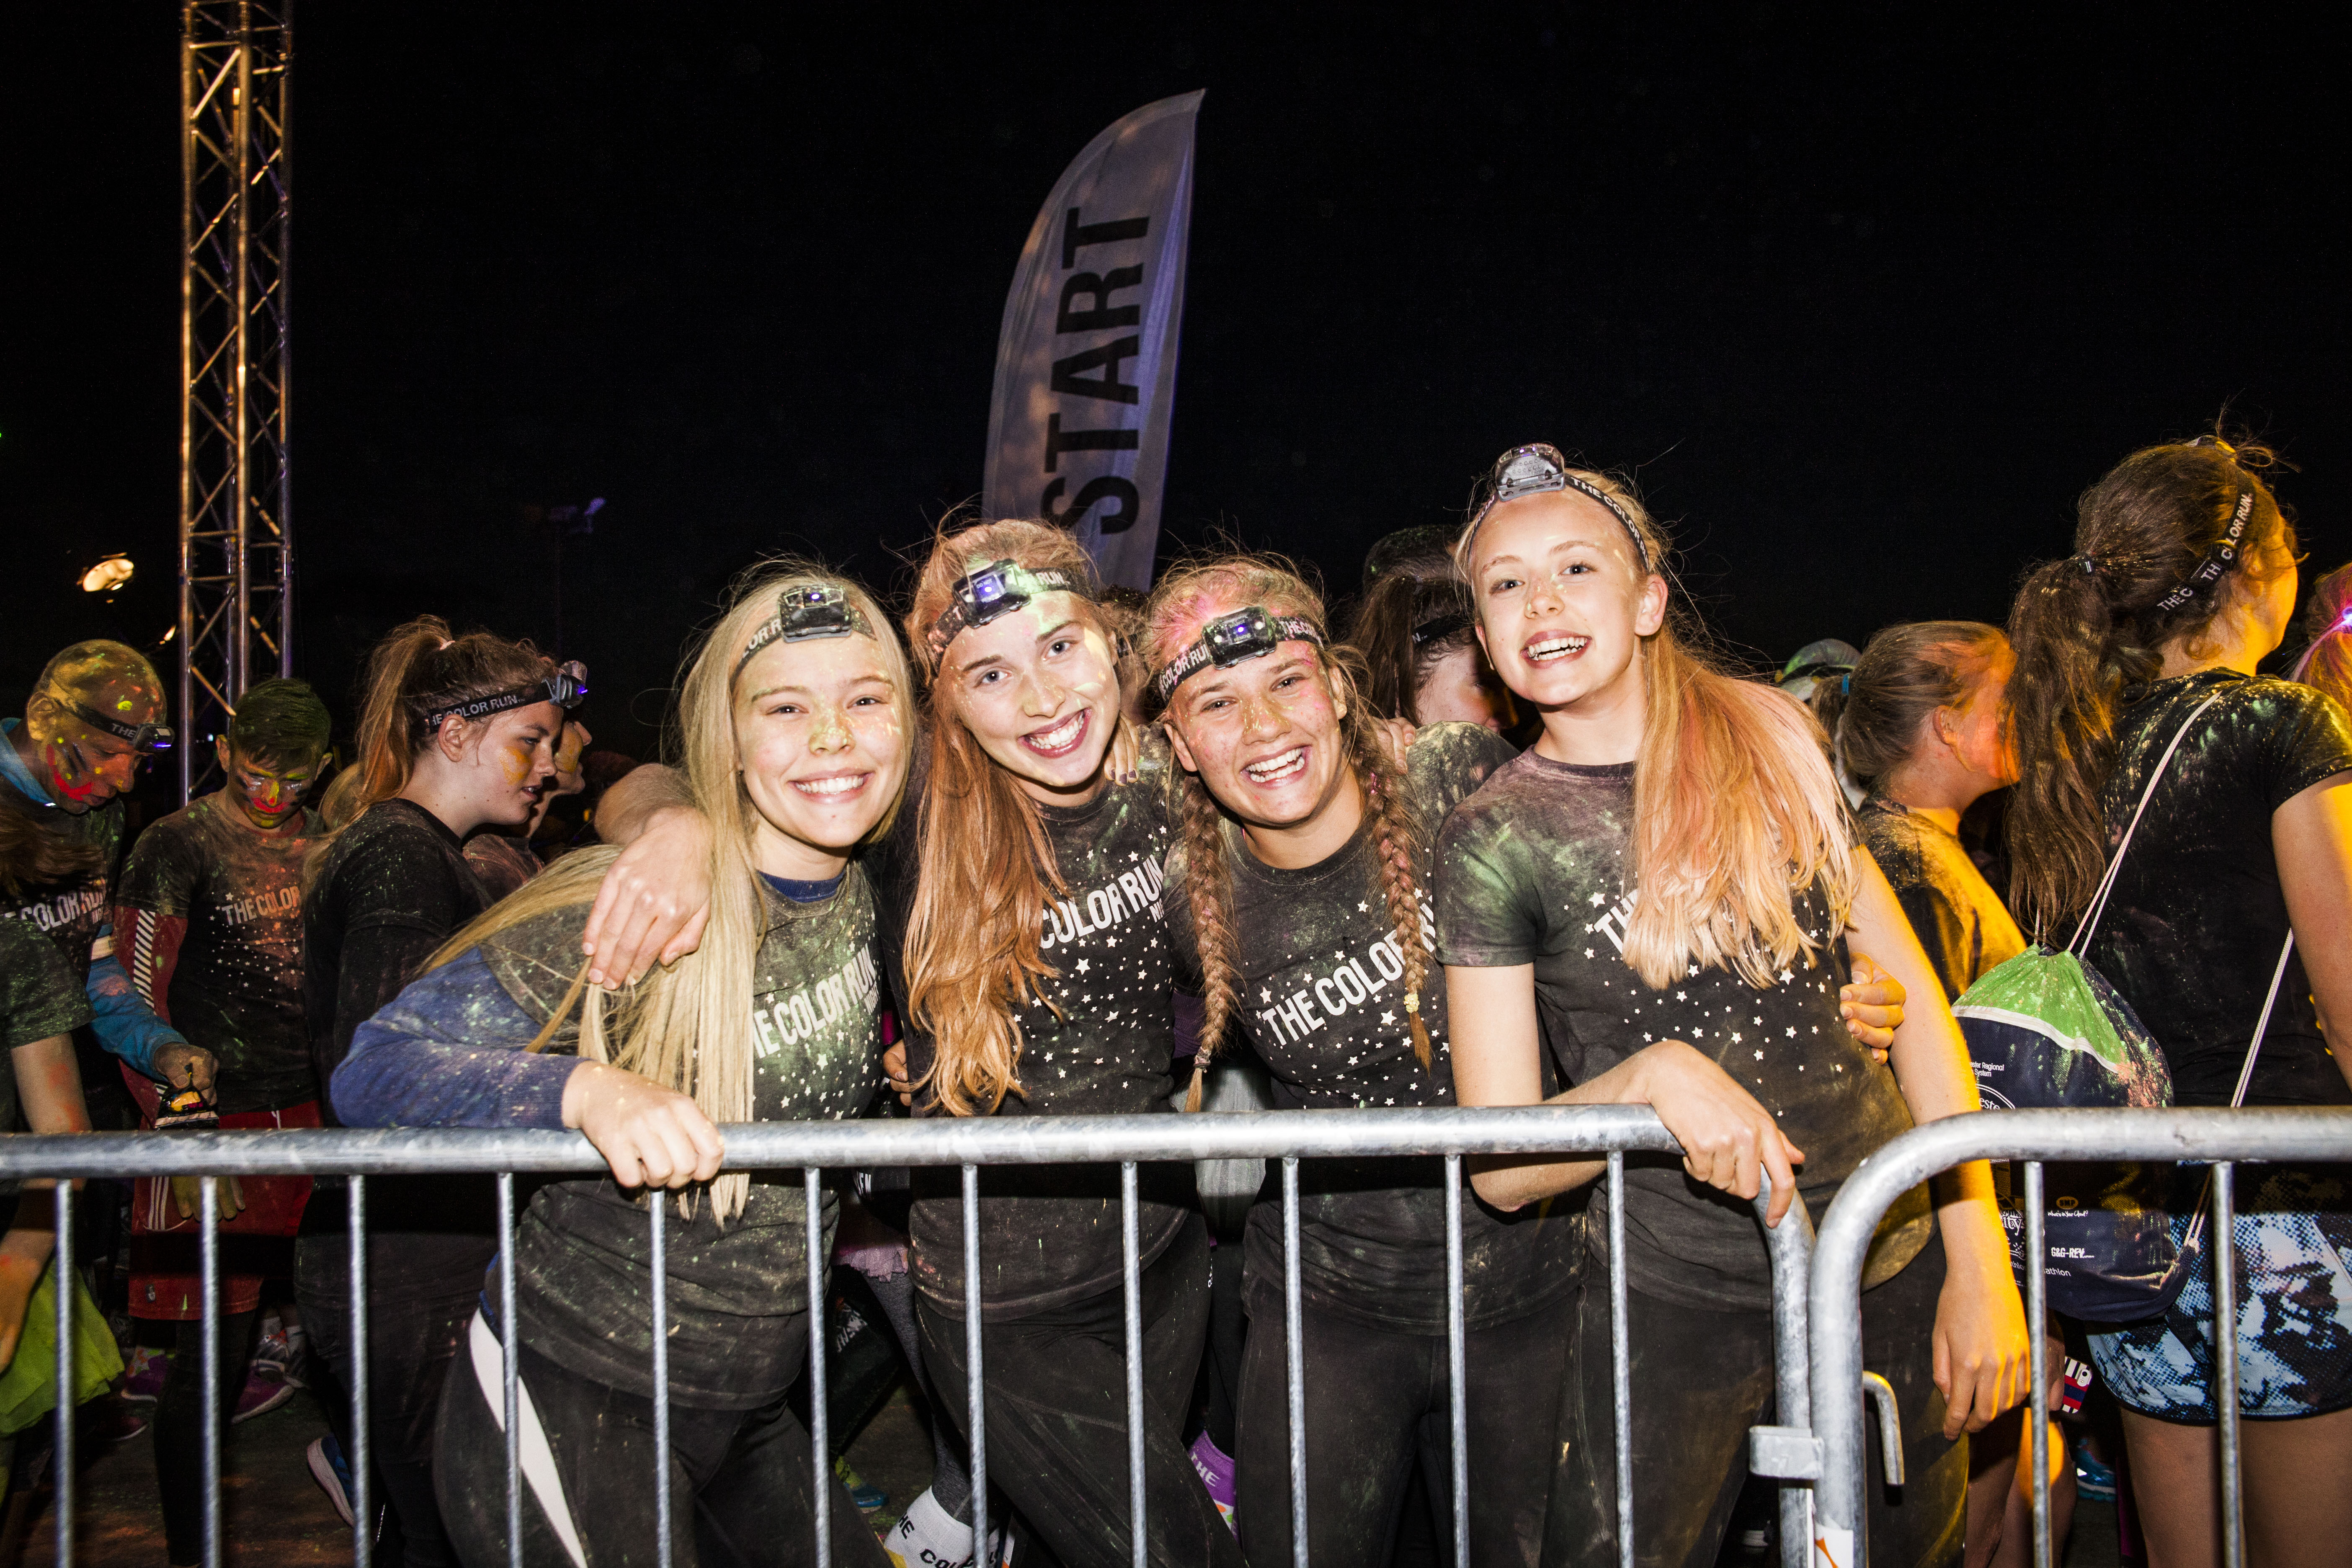 TheColorRunNight2015_HelenaLundquist_mindre_12